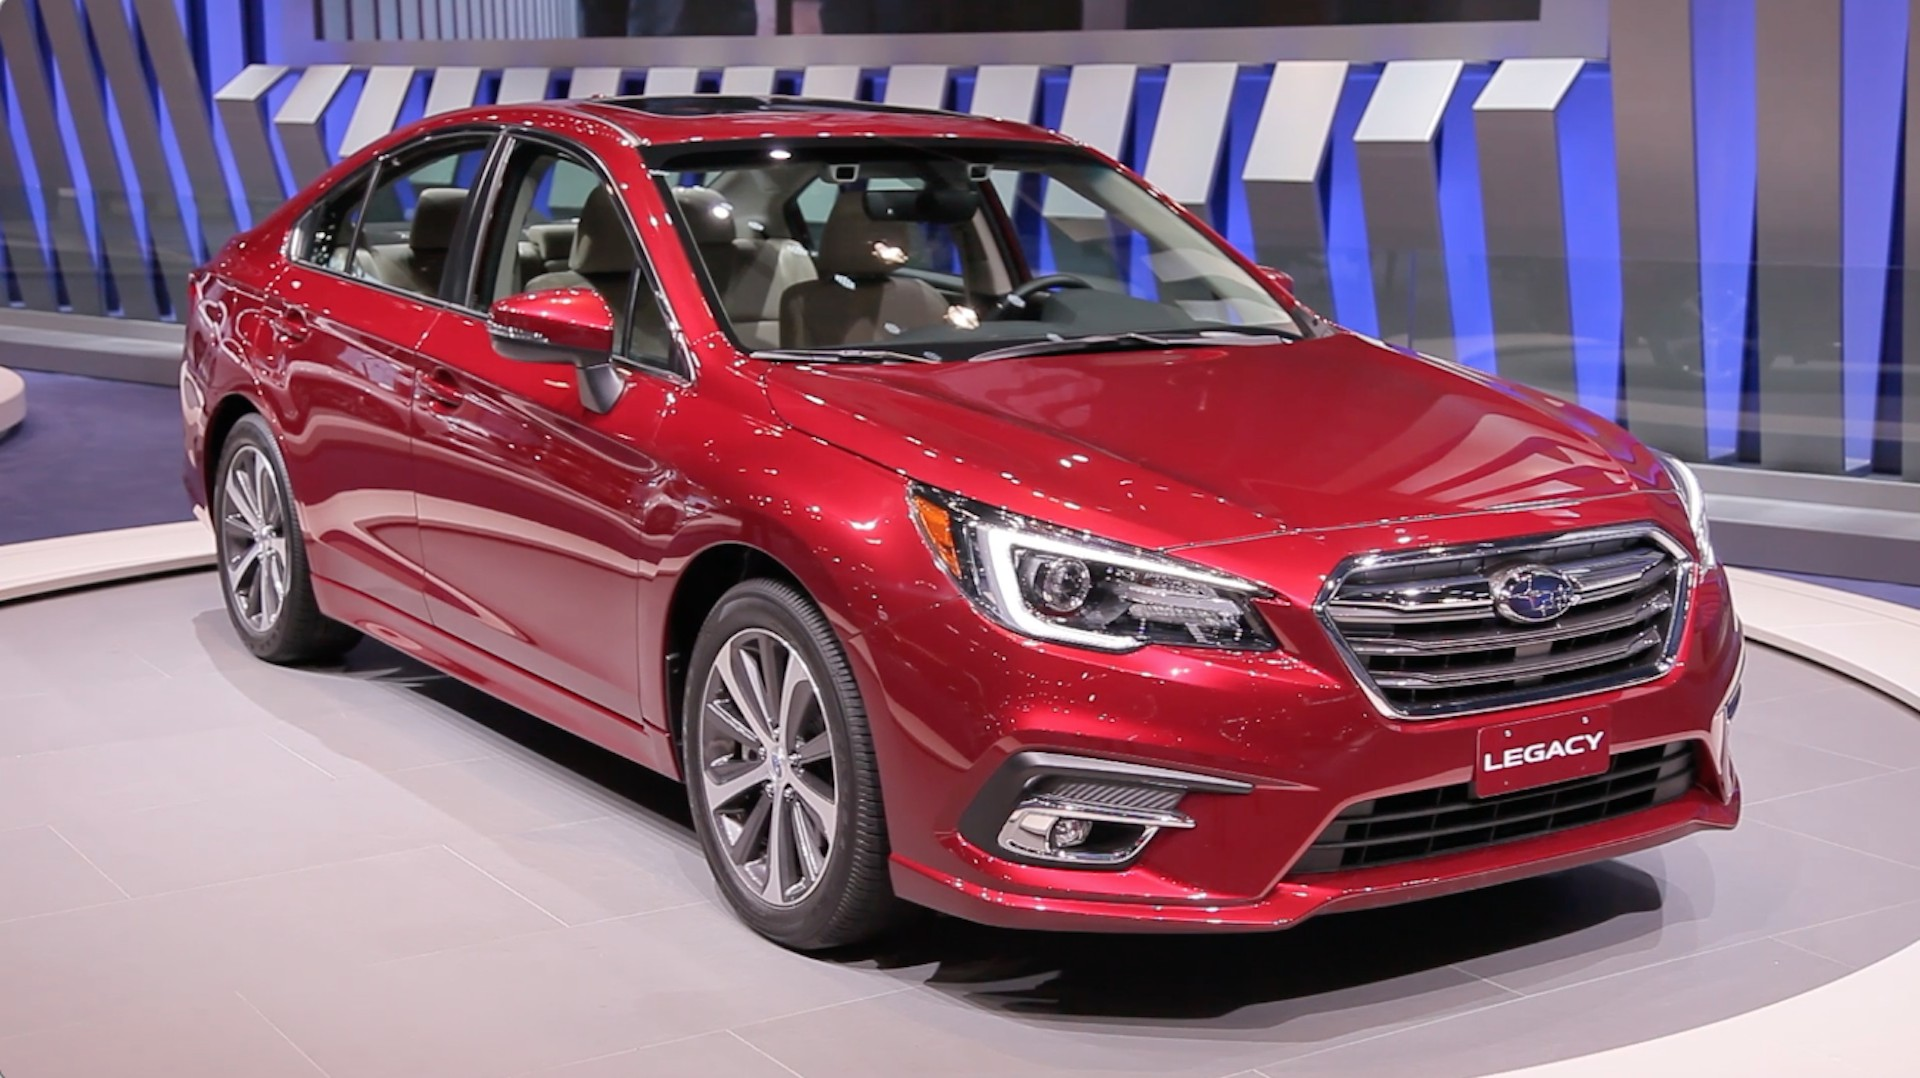 2018 Subaru Legacy video preview